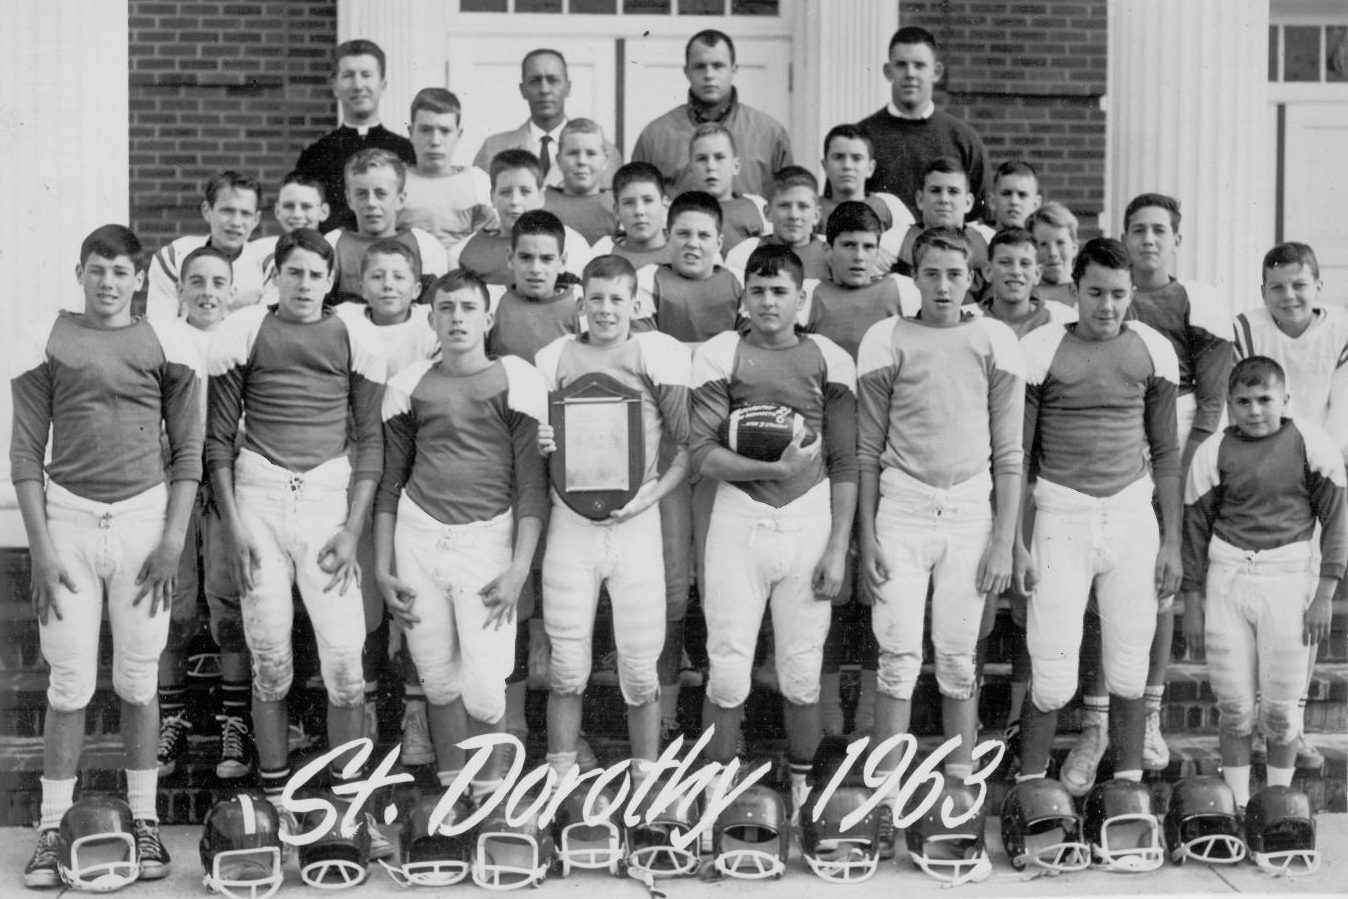 The St. Dot´s football team in 1963. They beat St. Bernie´s 21-6 that year.